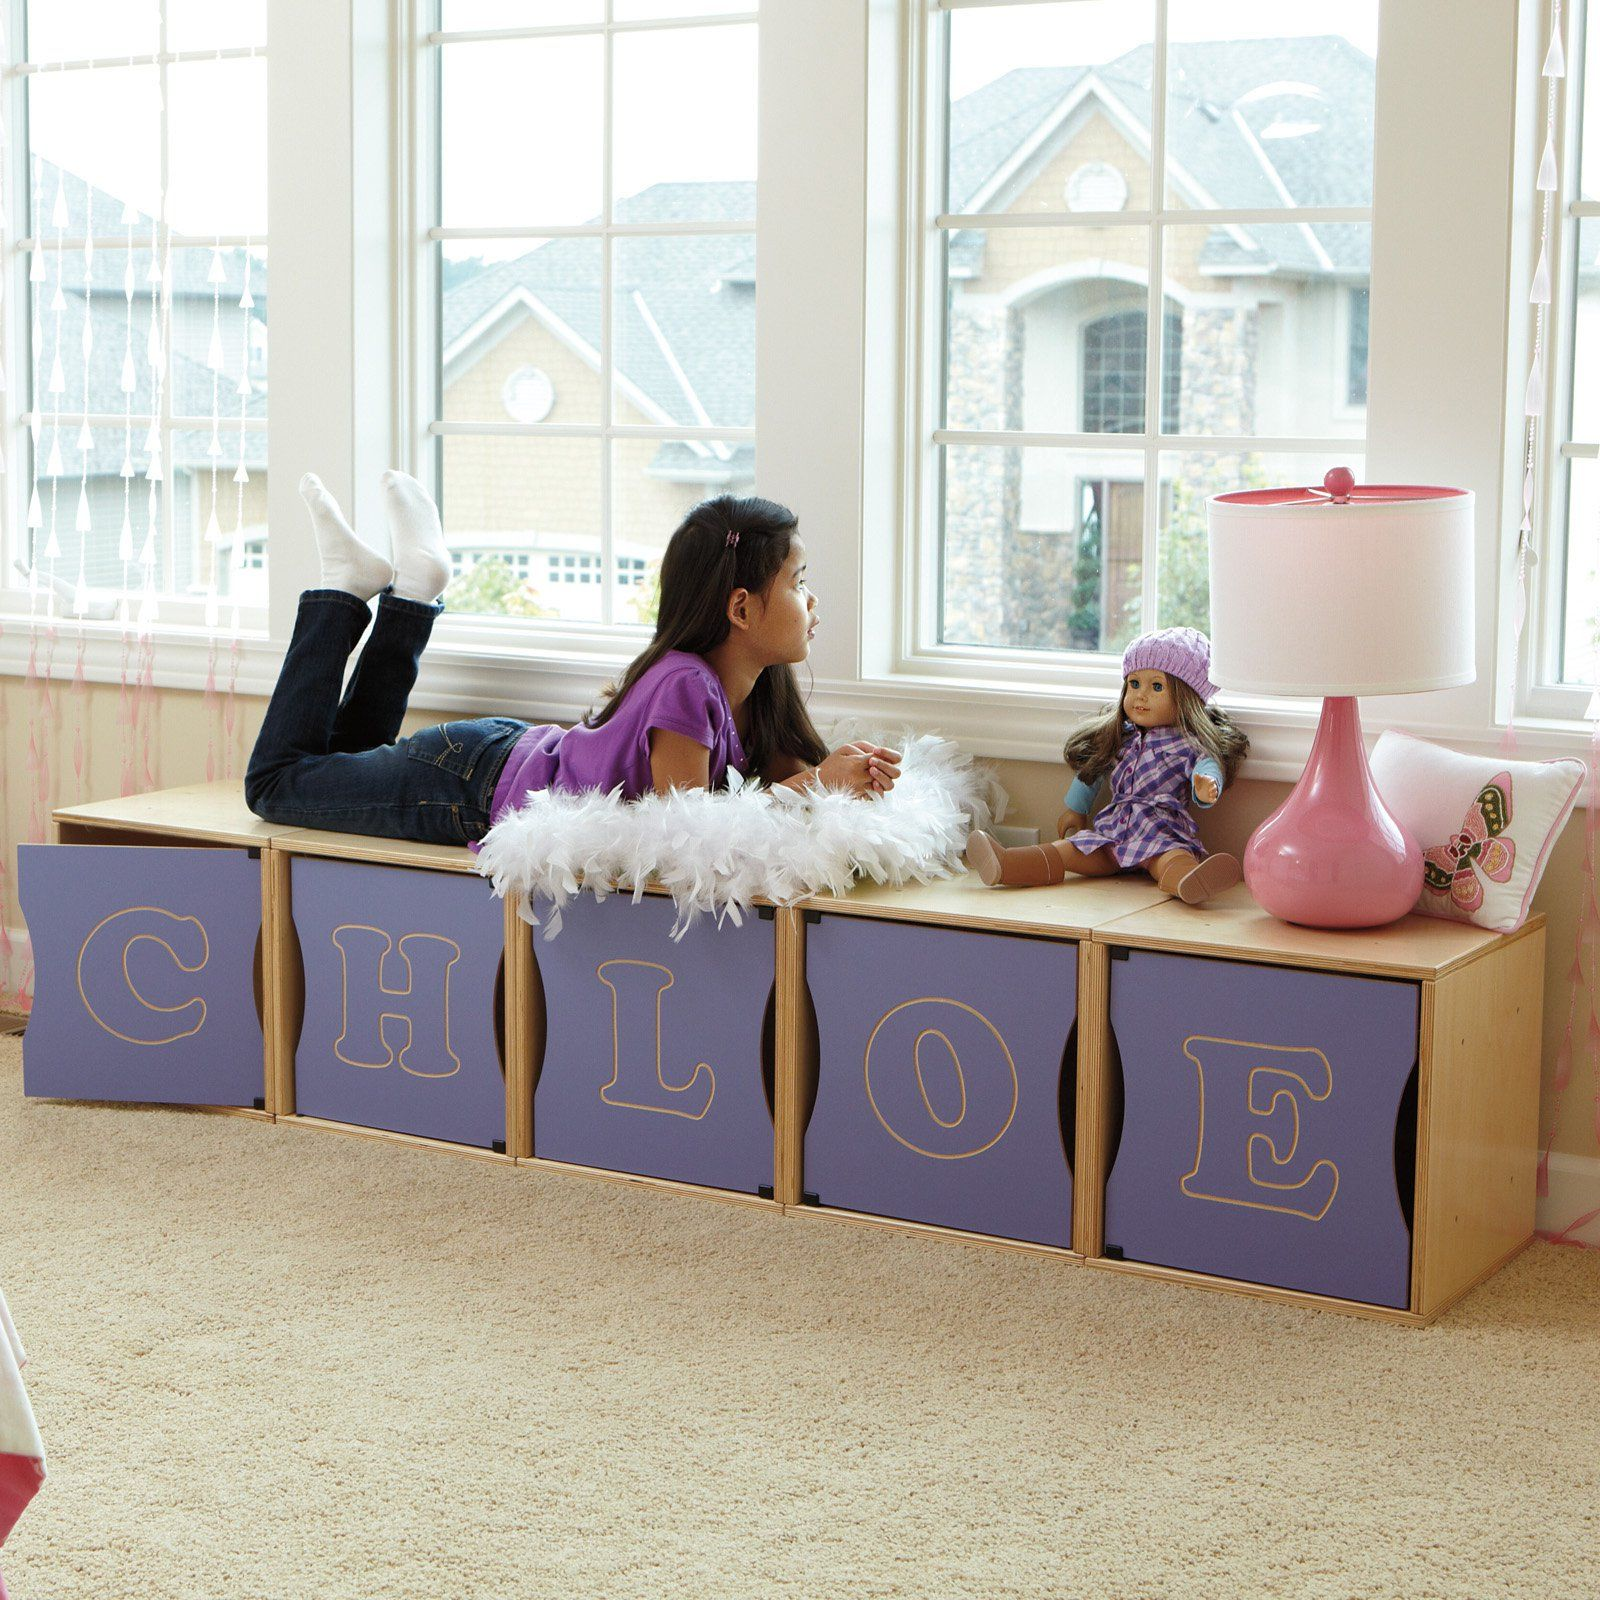 Have To Have It. RooMeez 5 Cube Bench Storage Unit   $407.5 @hayneedle |  House Plans | Pinterest | Bench Storage, Bench And Storage